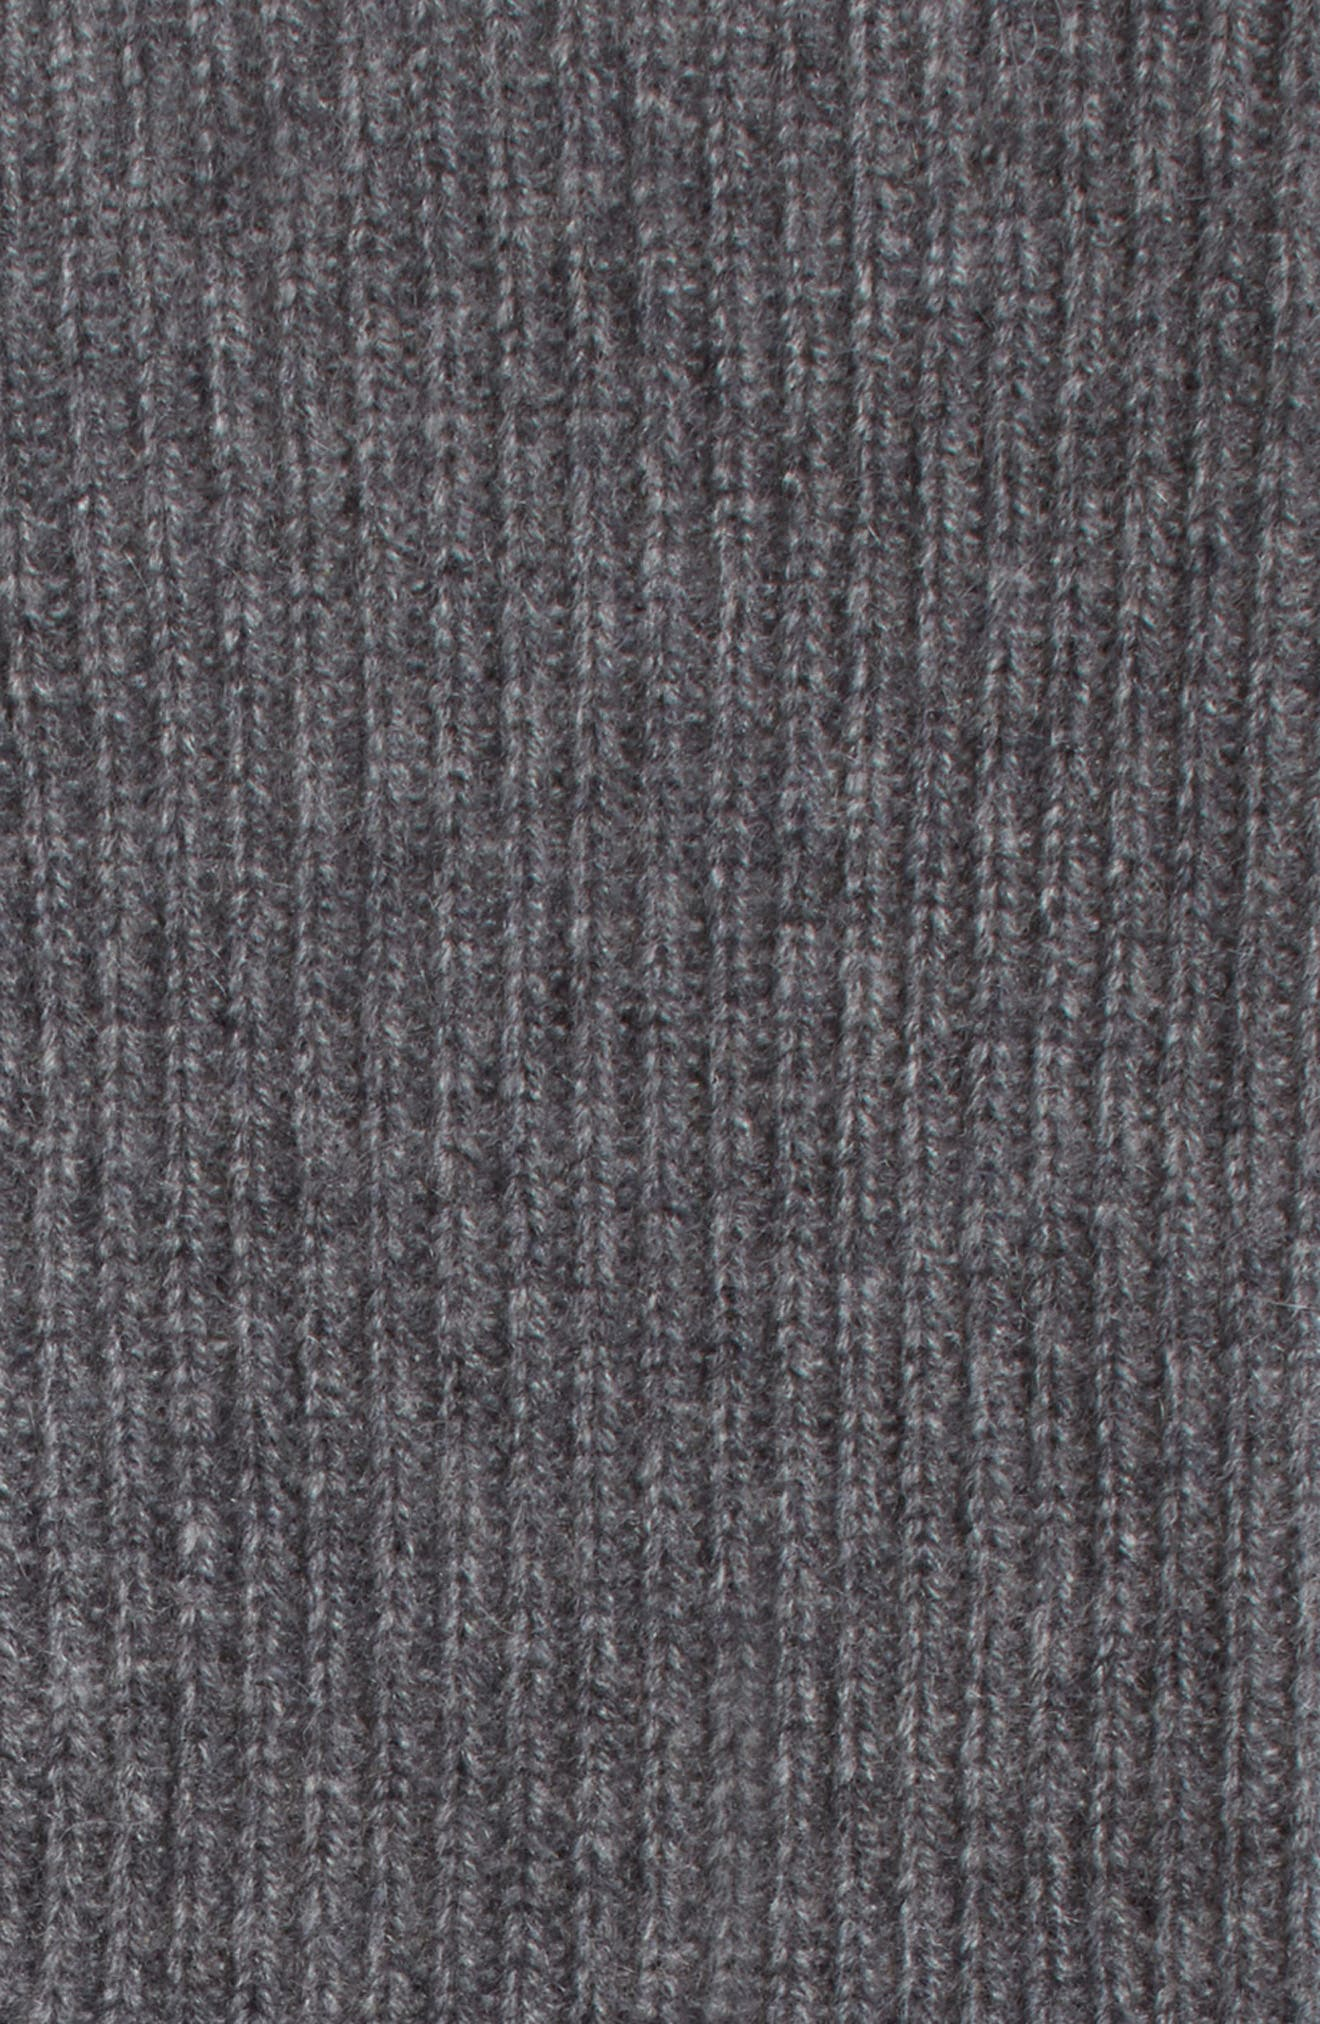 Cashmere Arm Warmers,                             Alternate thumbnail 2, color,                             020